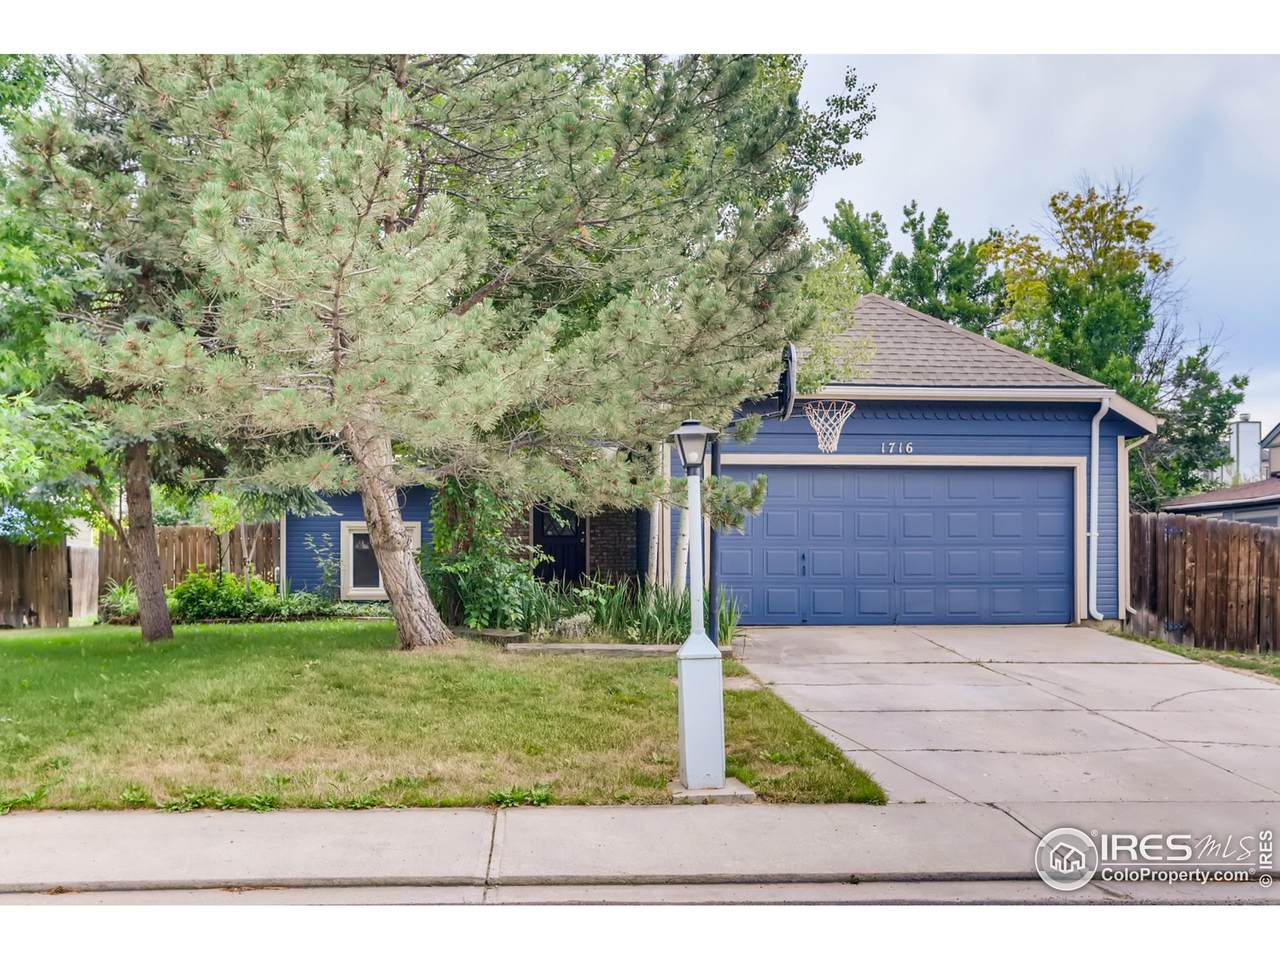 1716 Flemming Dr - Photo 1